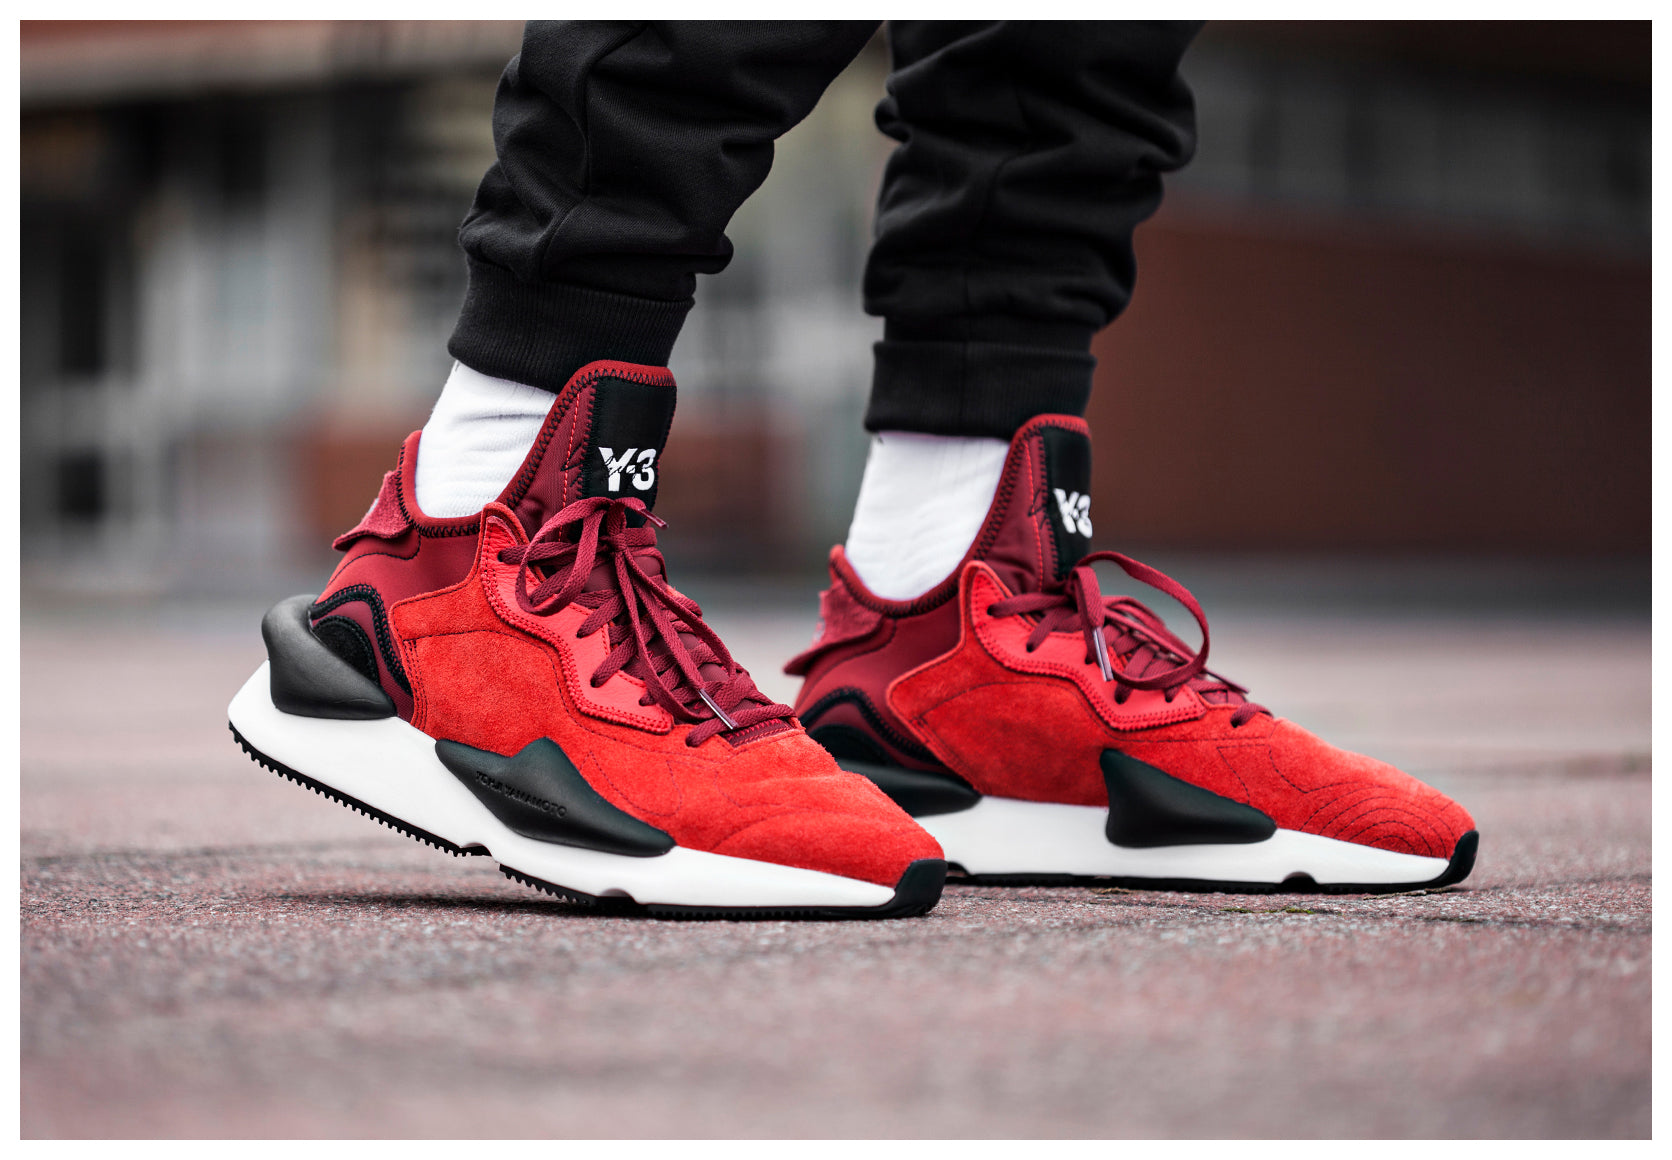 Close up detailed shot of model wearing Red Y-3 Kaiwa Trainers